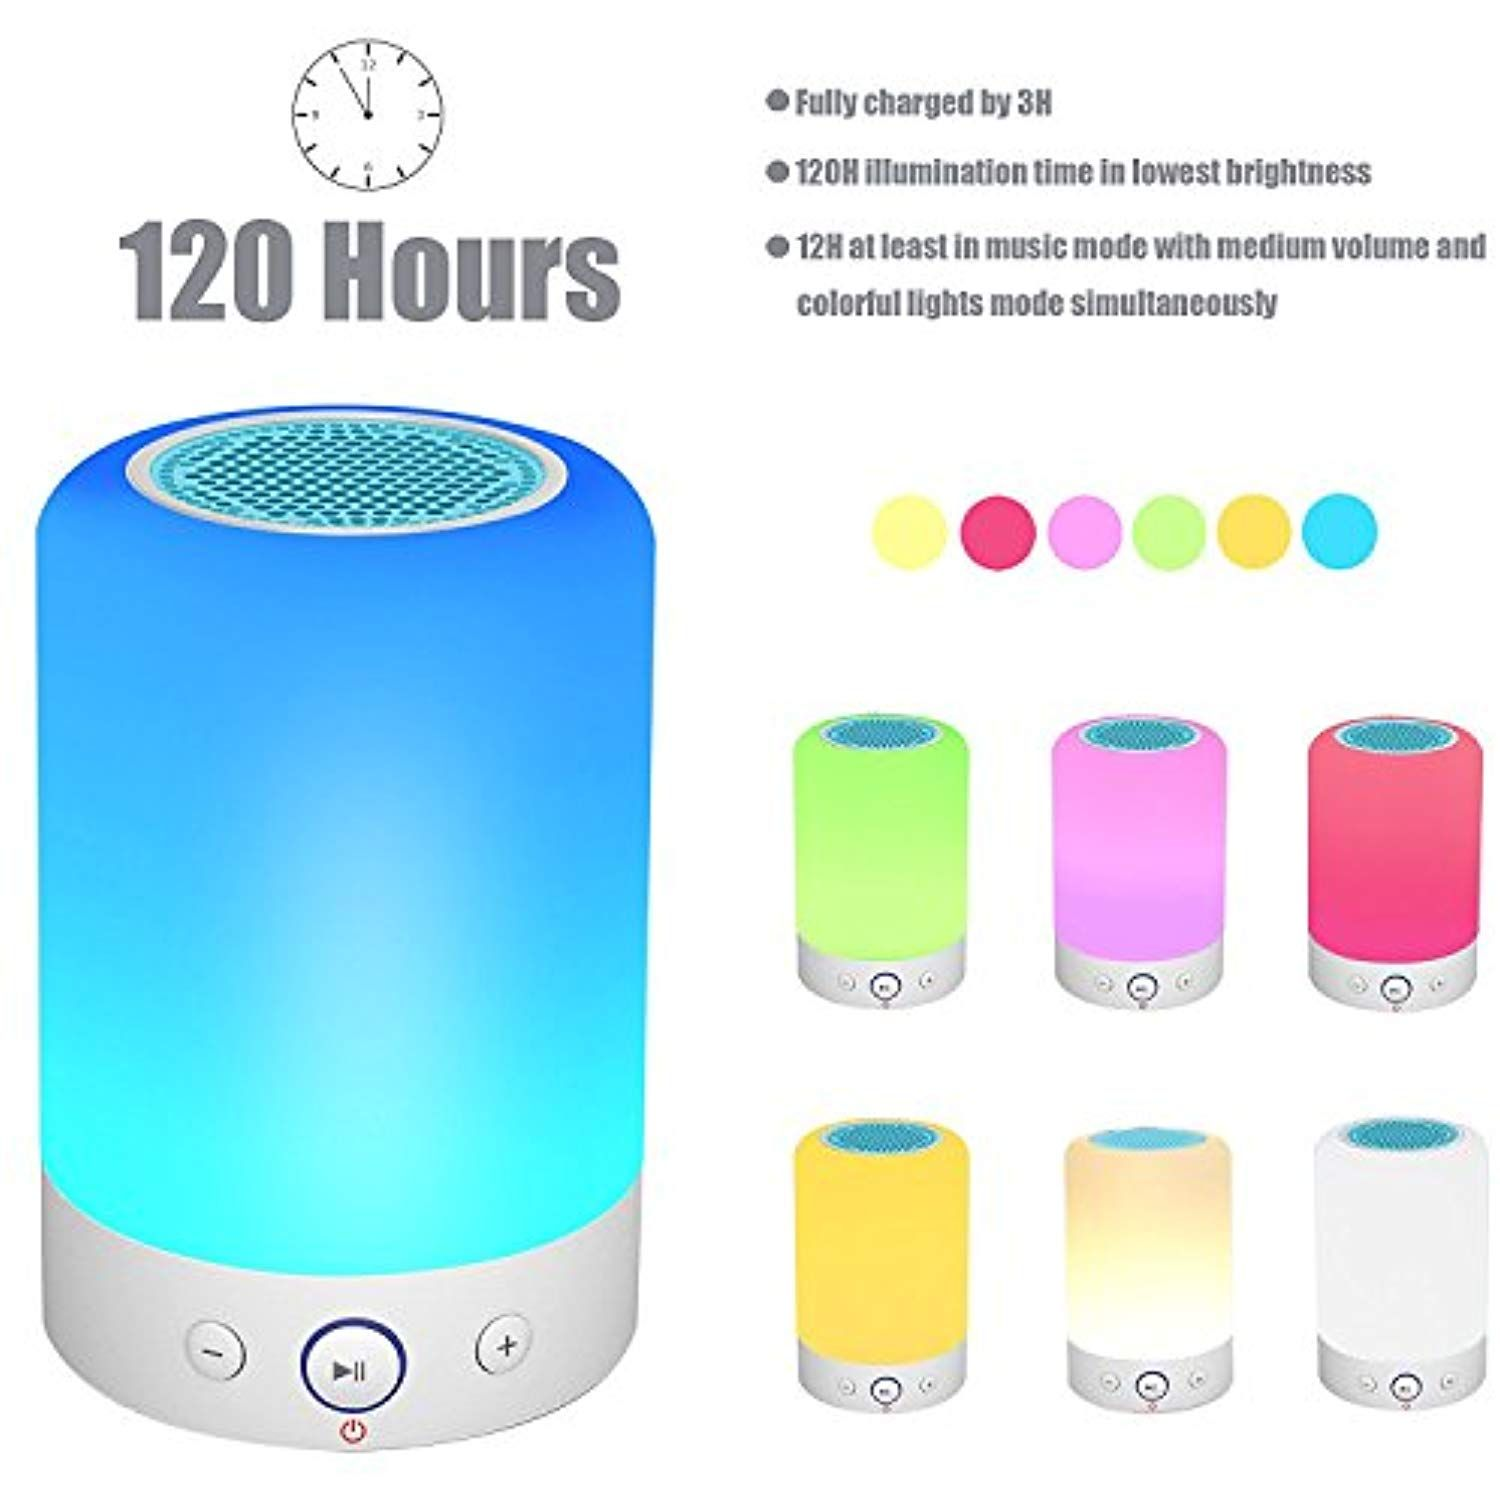 Touch Control Table Lamp With Bluetooth Speaker Led Smart Touch Lamp With Led Bluetooth Speaker S Accesorios Para Celular Accesorios Para Telefonos Parlantes